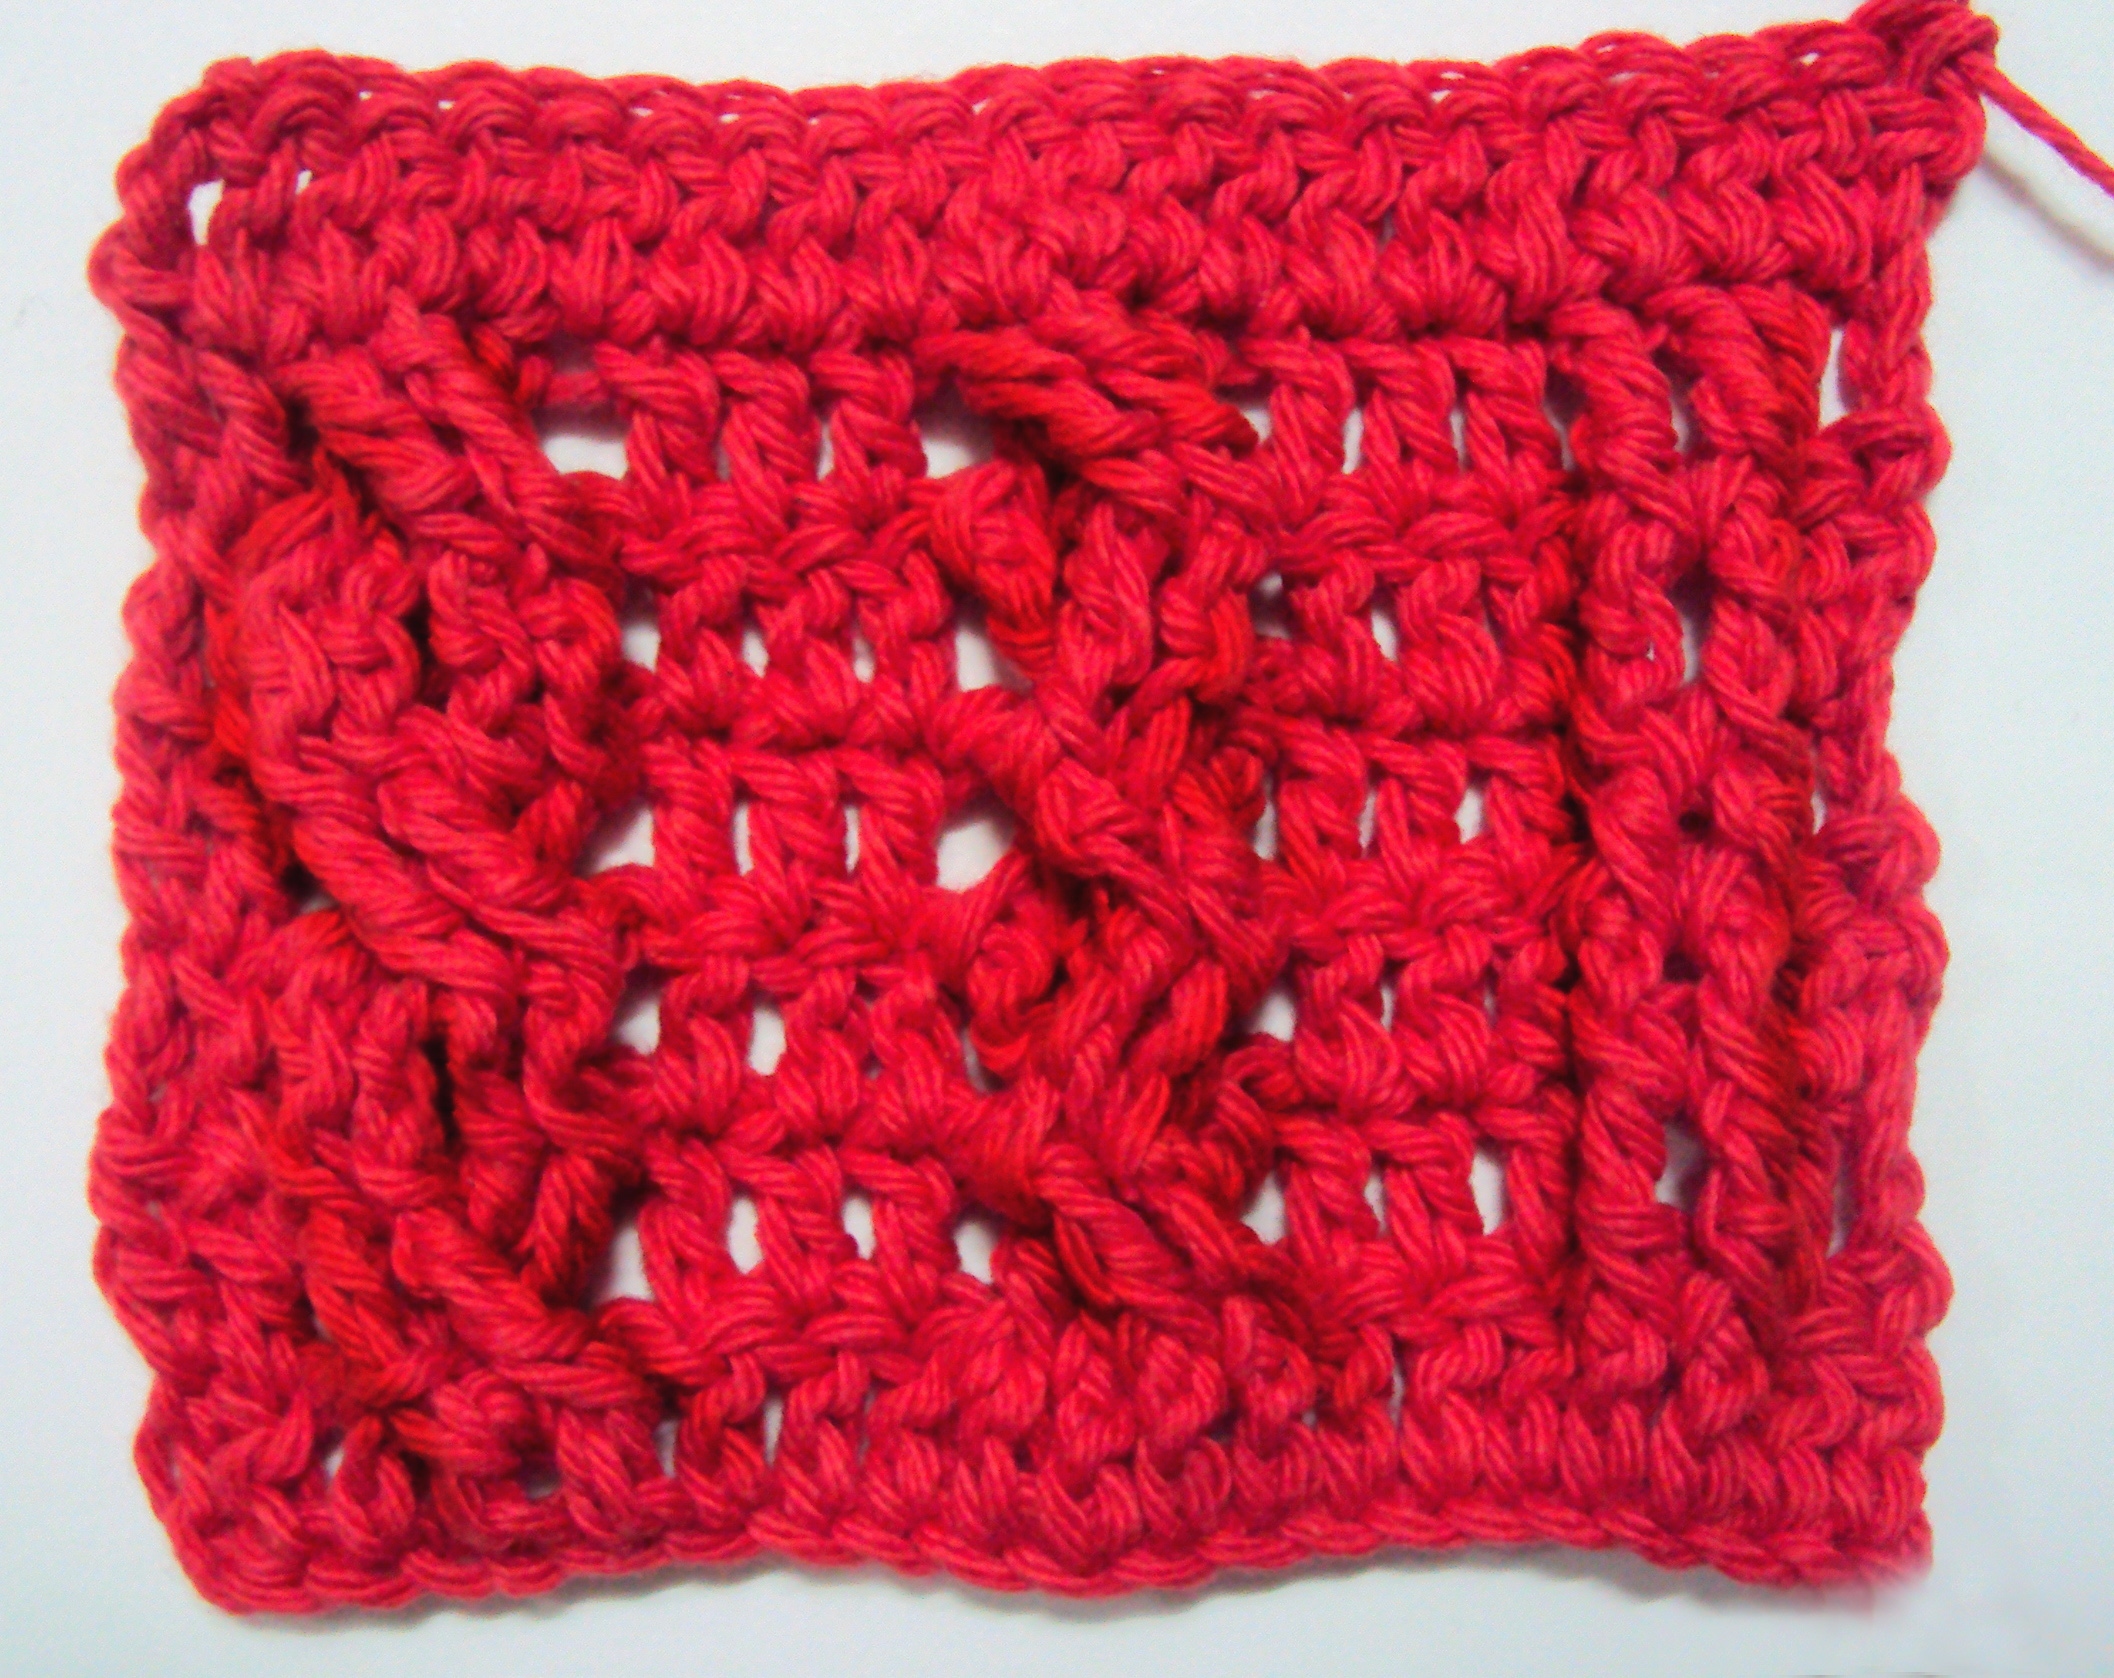 Www Crochet : Crochet Stitches How to crochet: cable stitches